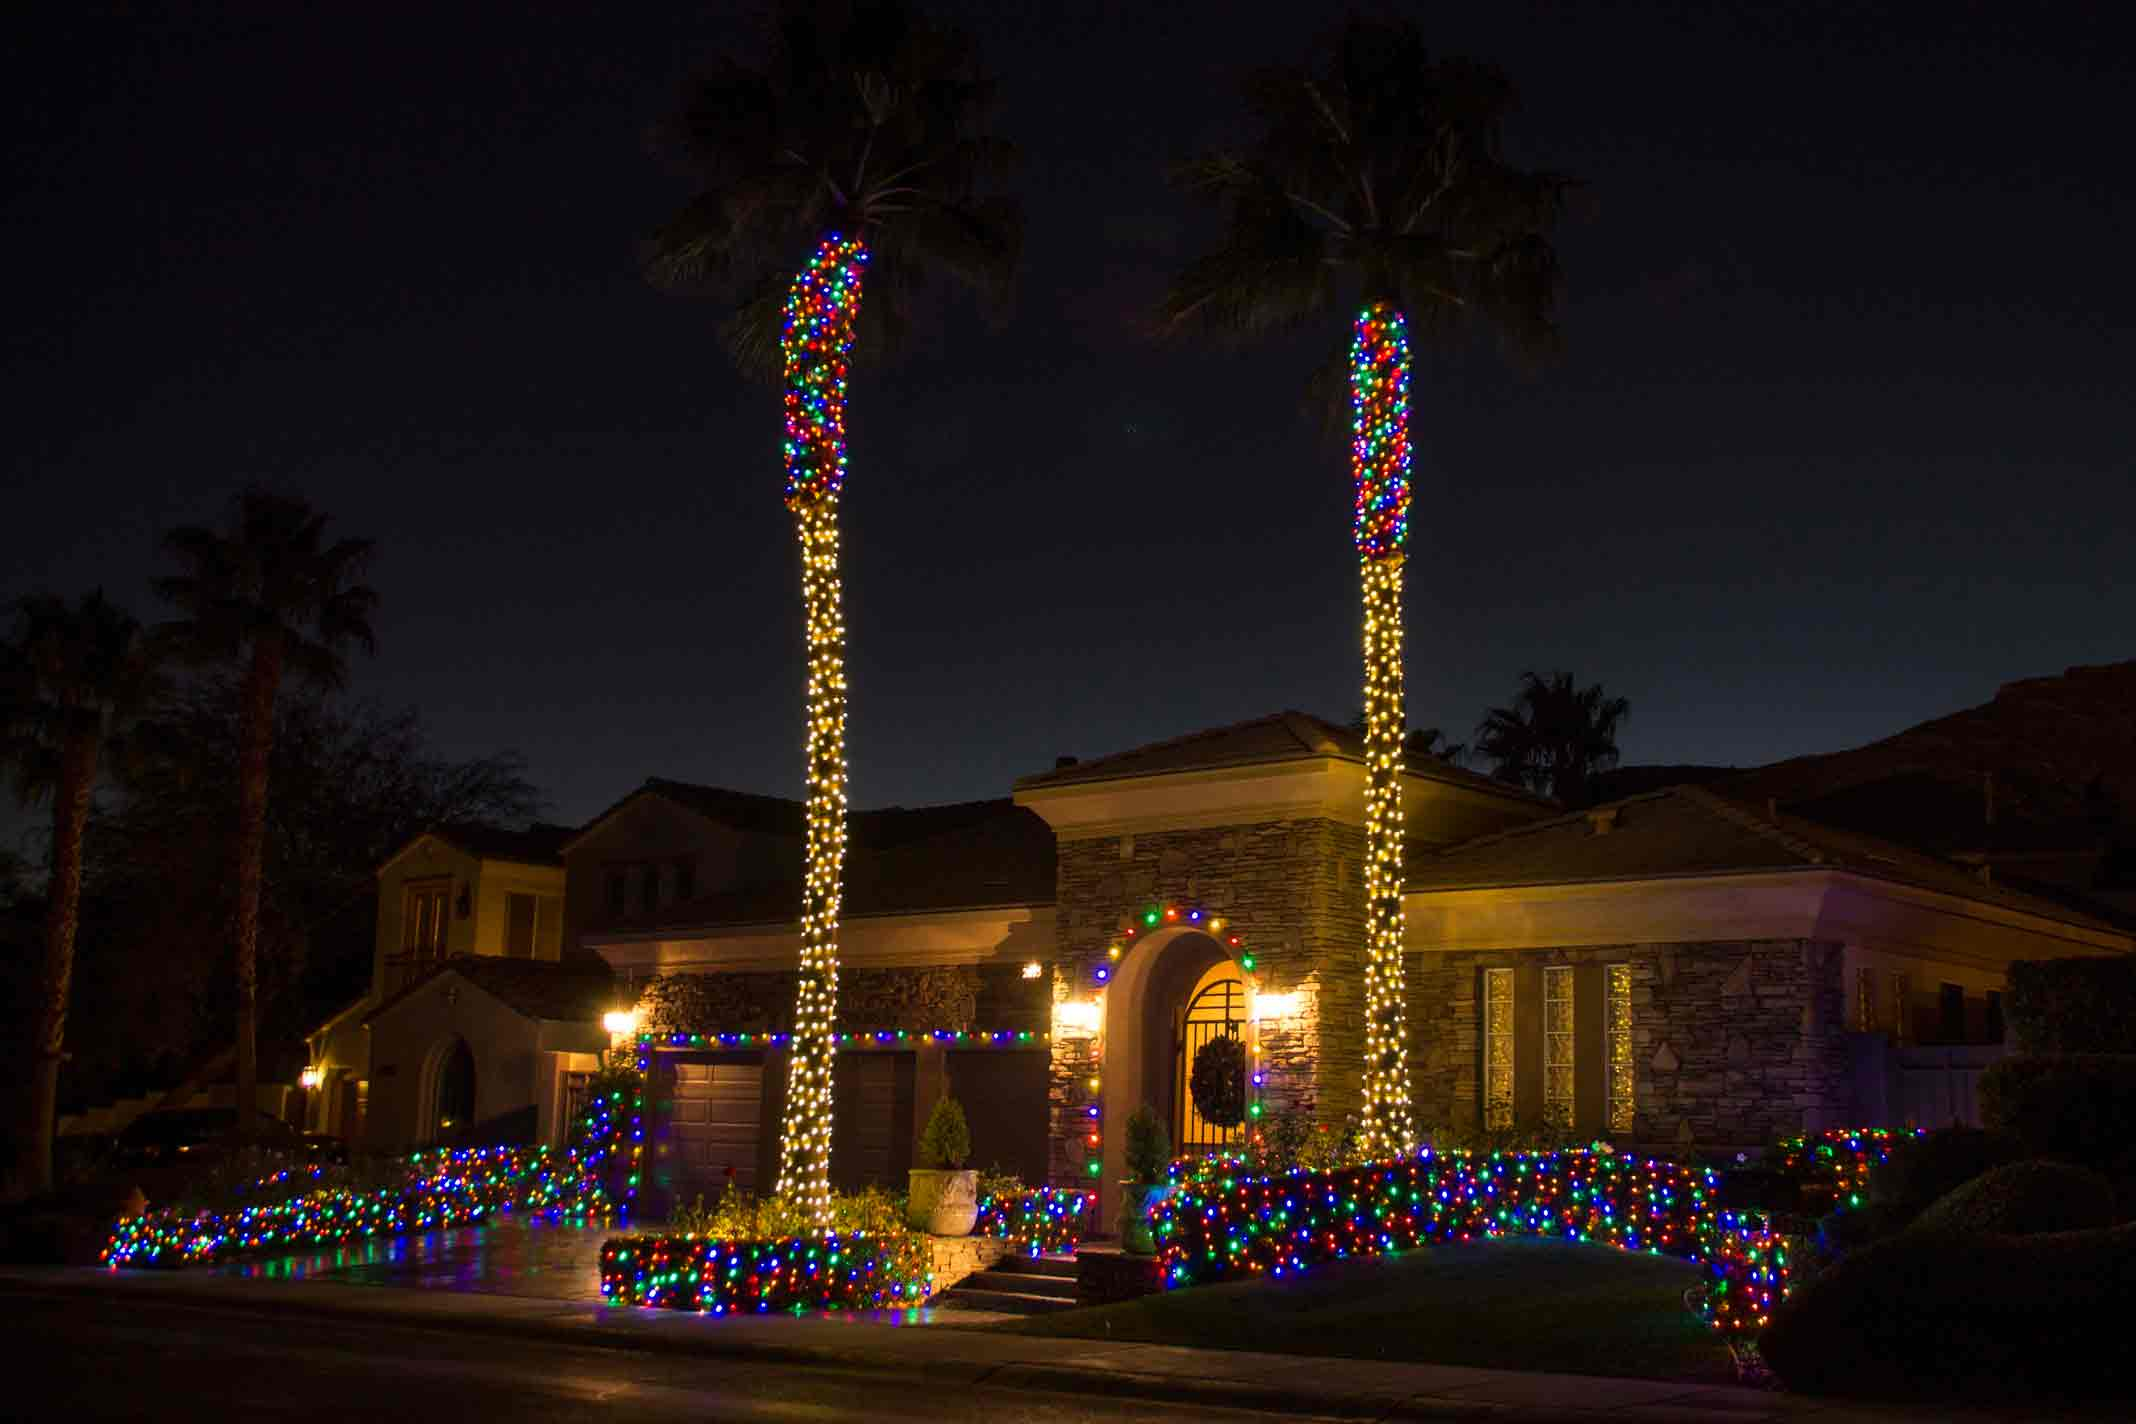 Residential LED Christmas lighting service by Holiday Decorations in Las Vegas